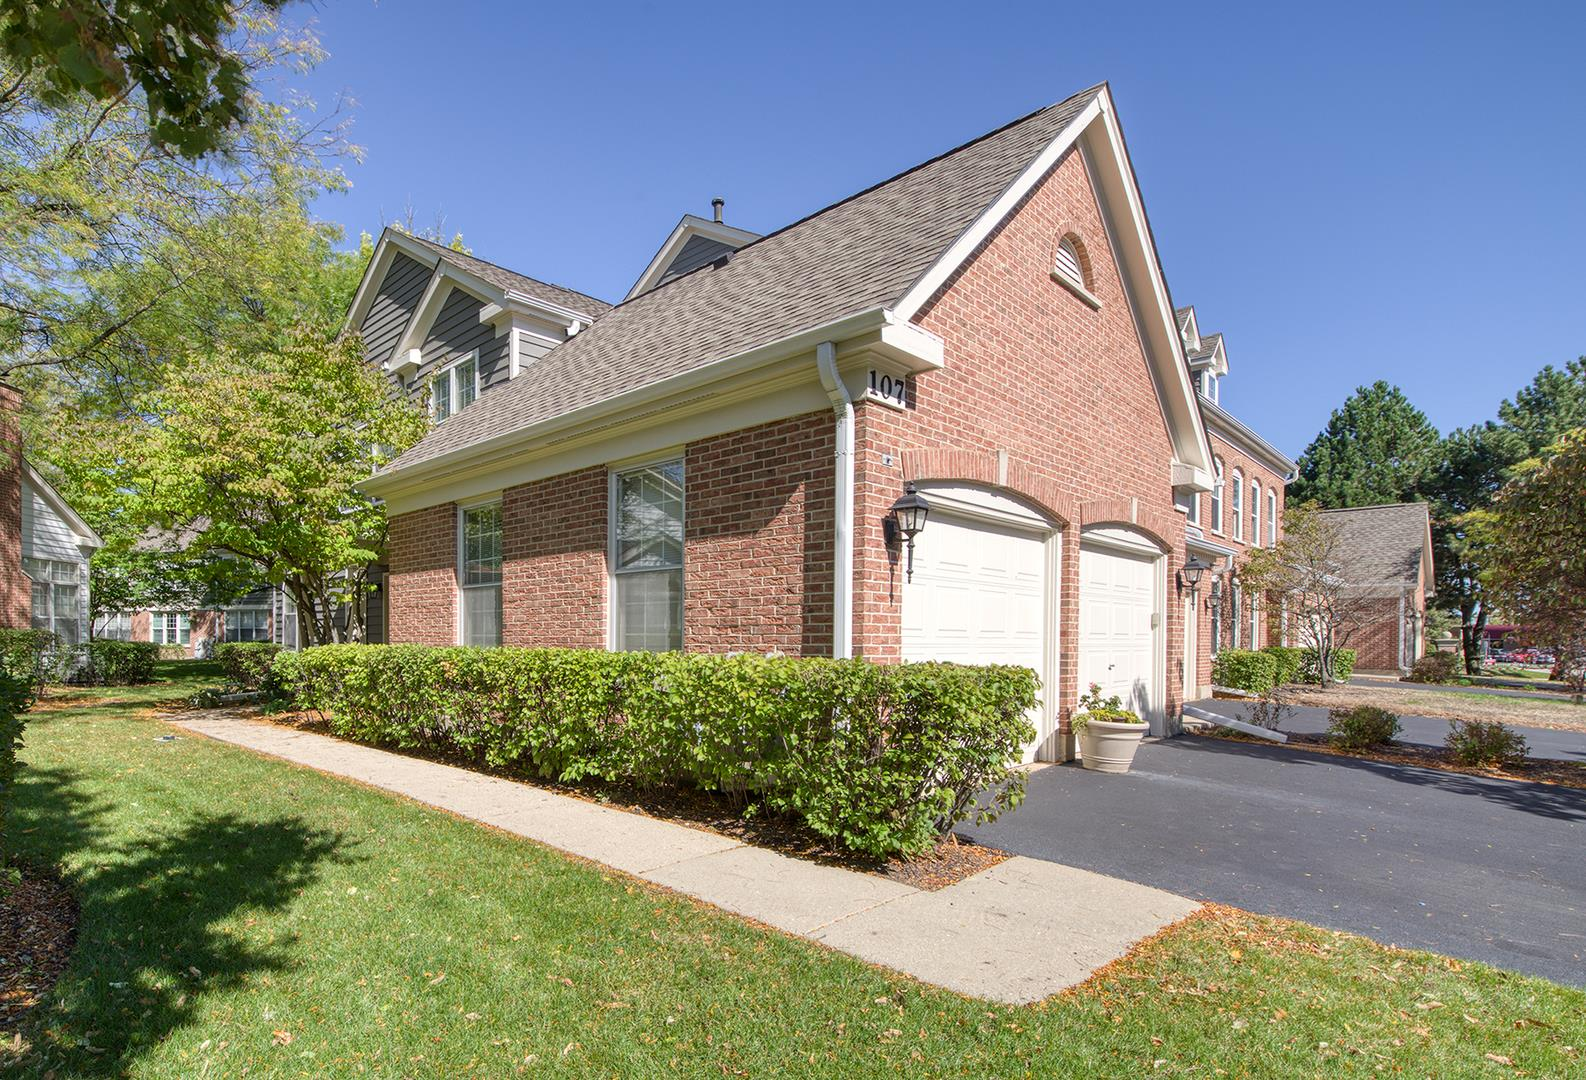 107 Harvard Court, Glenview, IL 60026 - #: 10896903